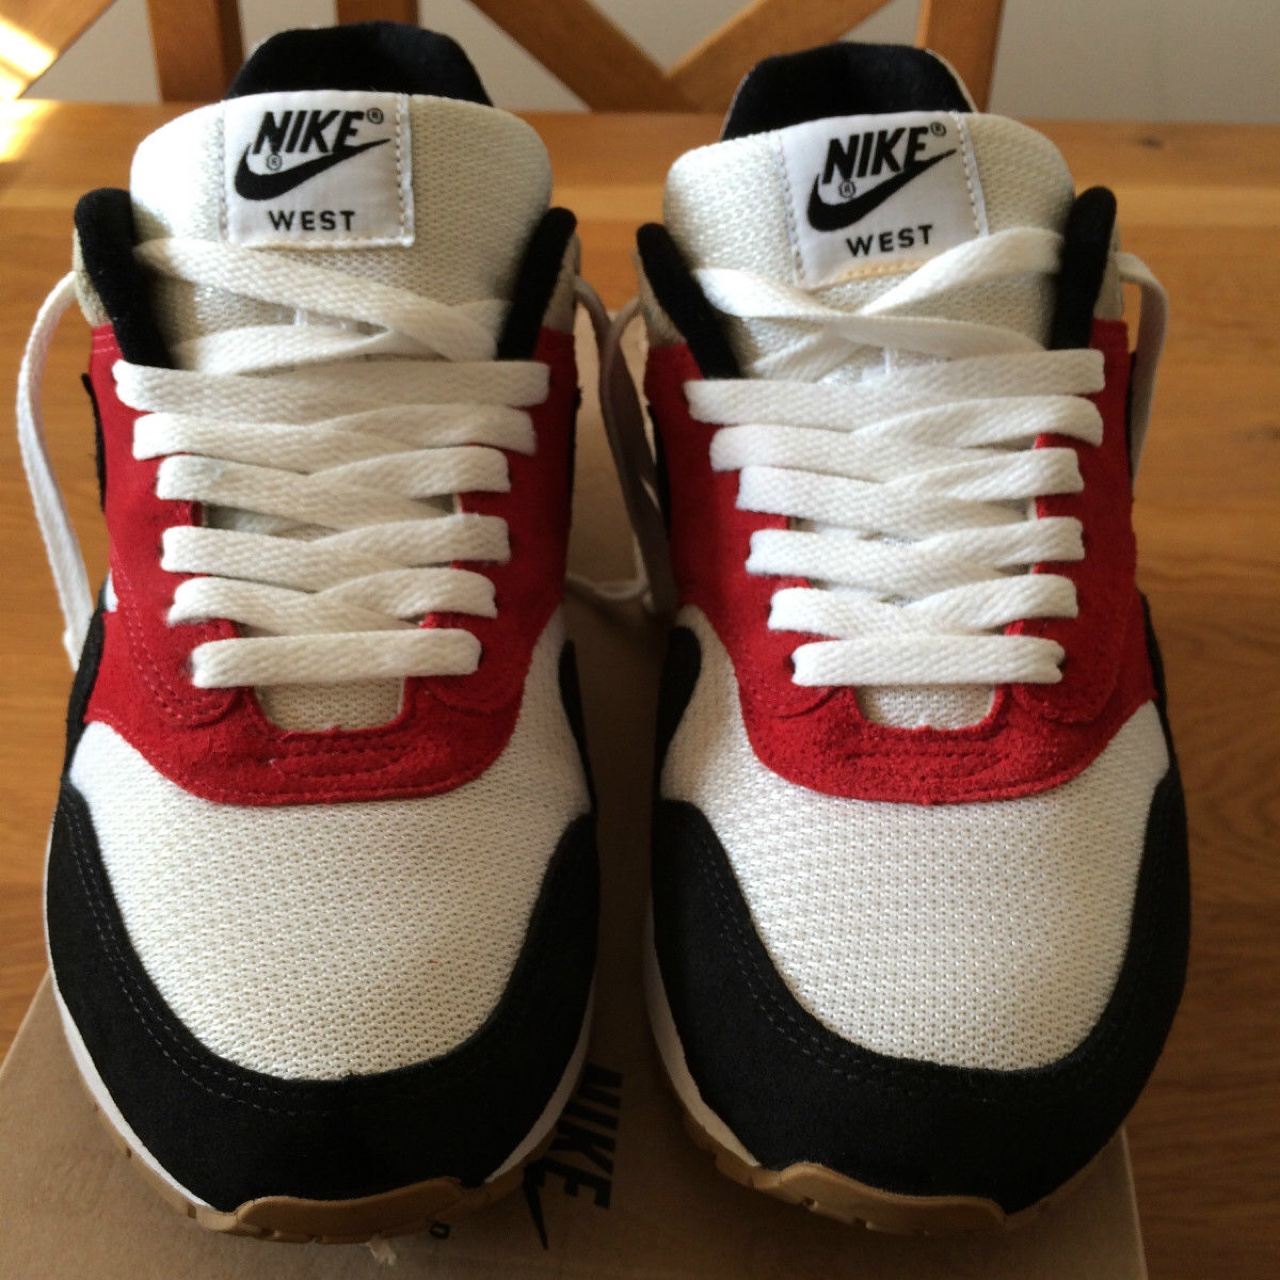 Nike air max 1 west pack 2009. Size 7.5uk. Condition Depop